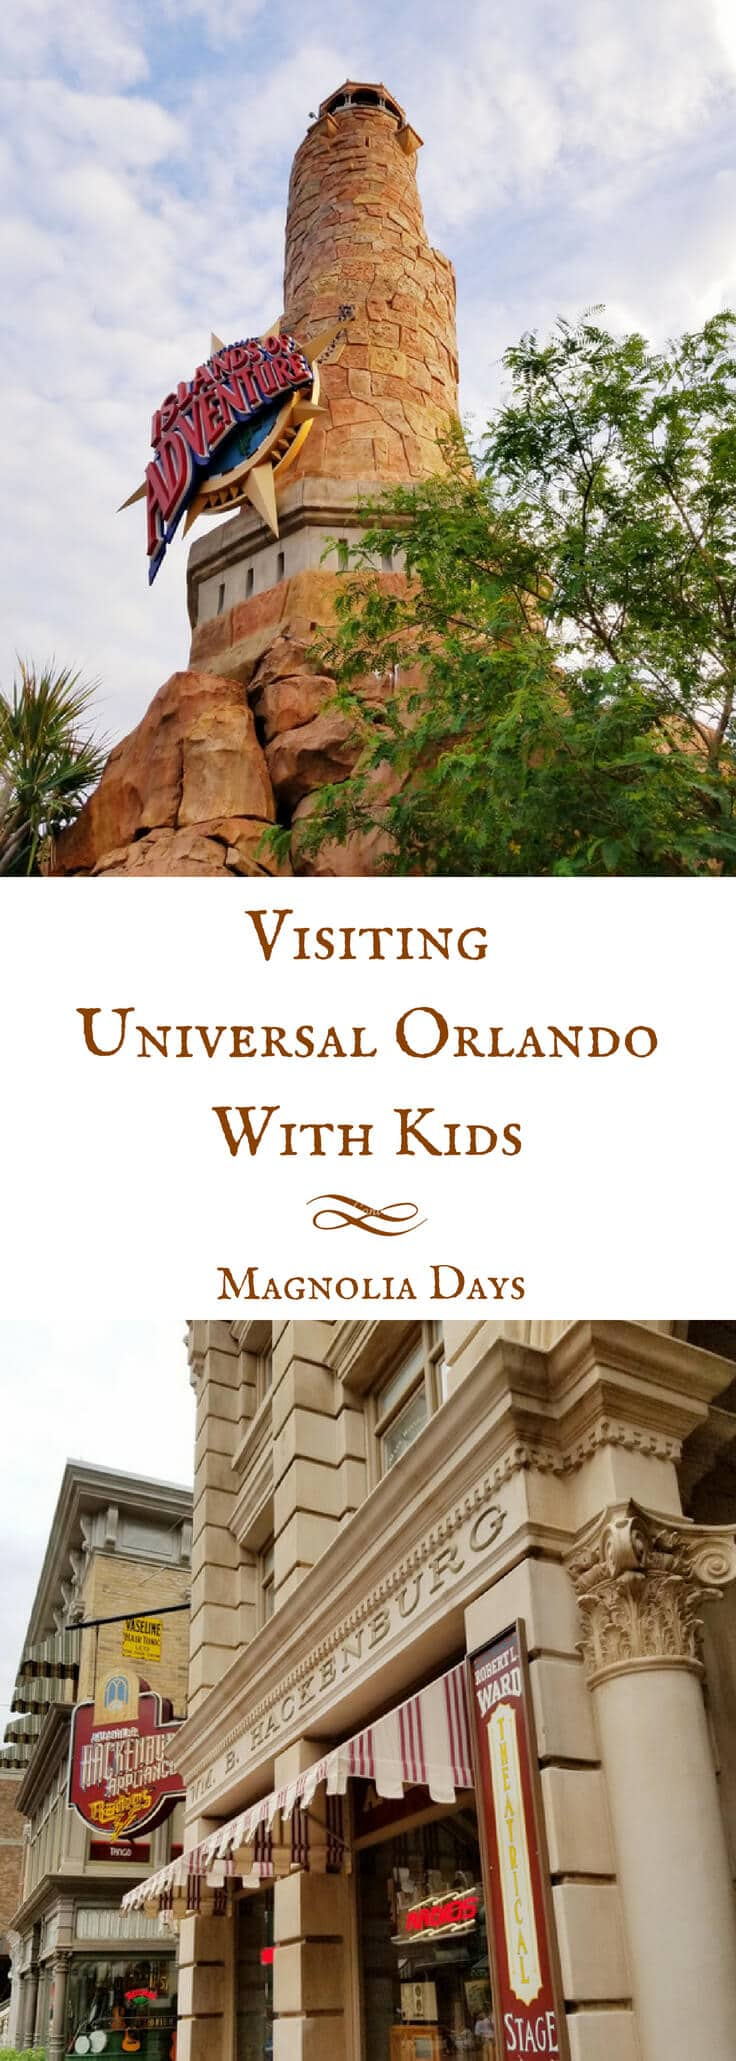 Can you successfully visit Universal Studios Florida and Islands of Adventure with kids? Yes, you can! Get a theme park expert's tips on what to do and how to plan for your visit.